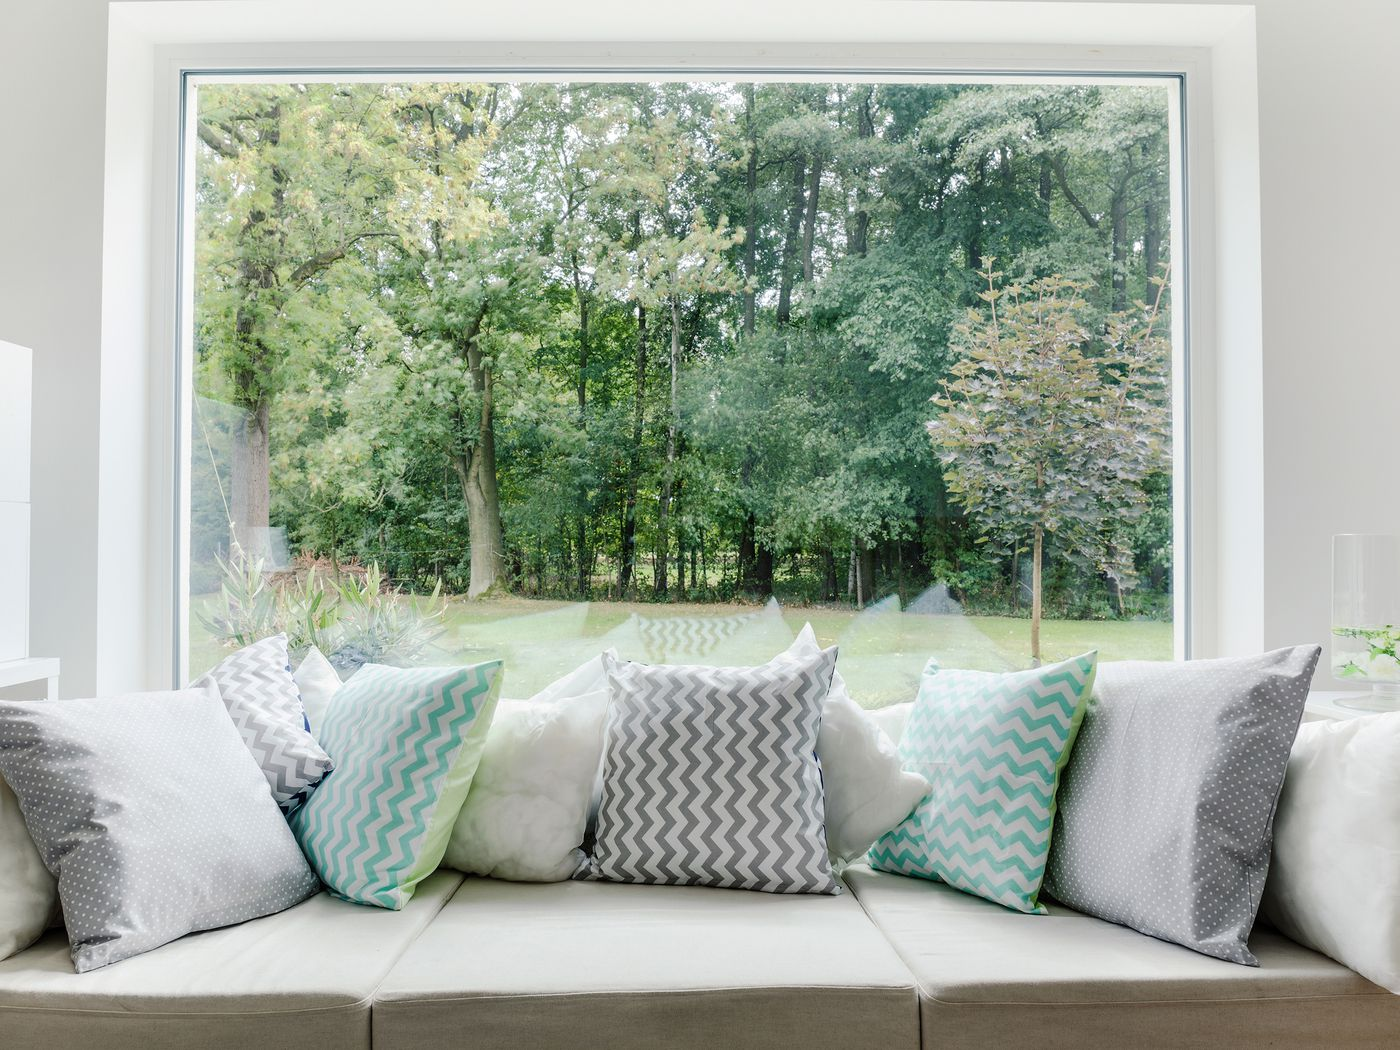 How To Clean Windows Best From The Outside This Old House